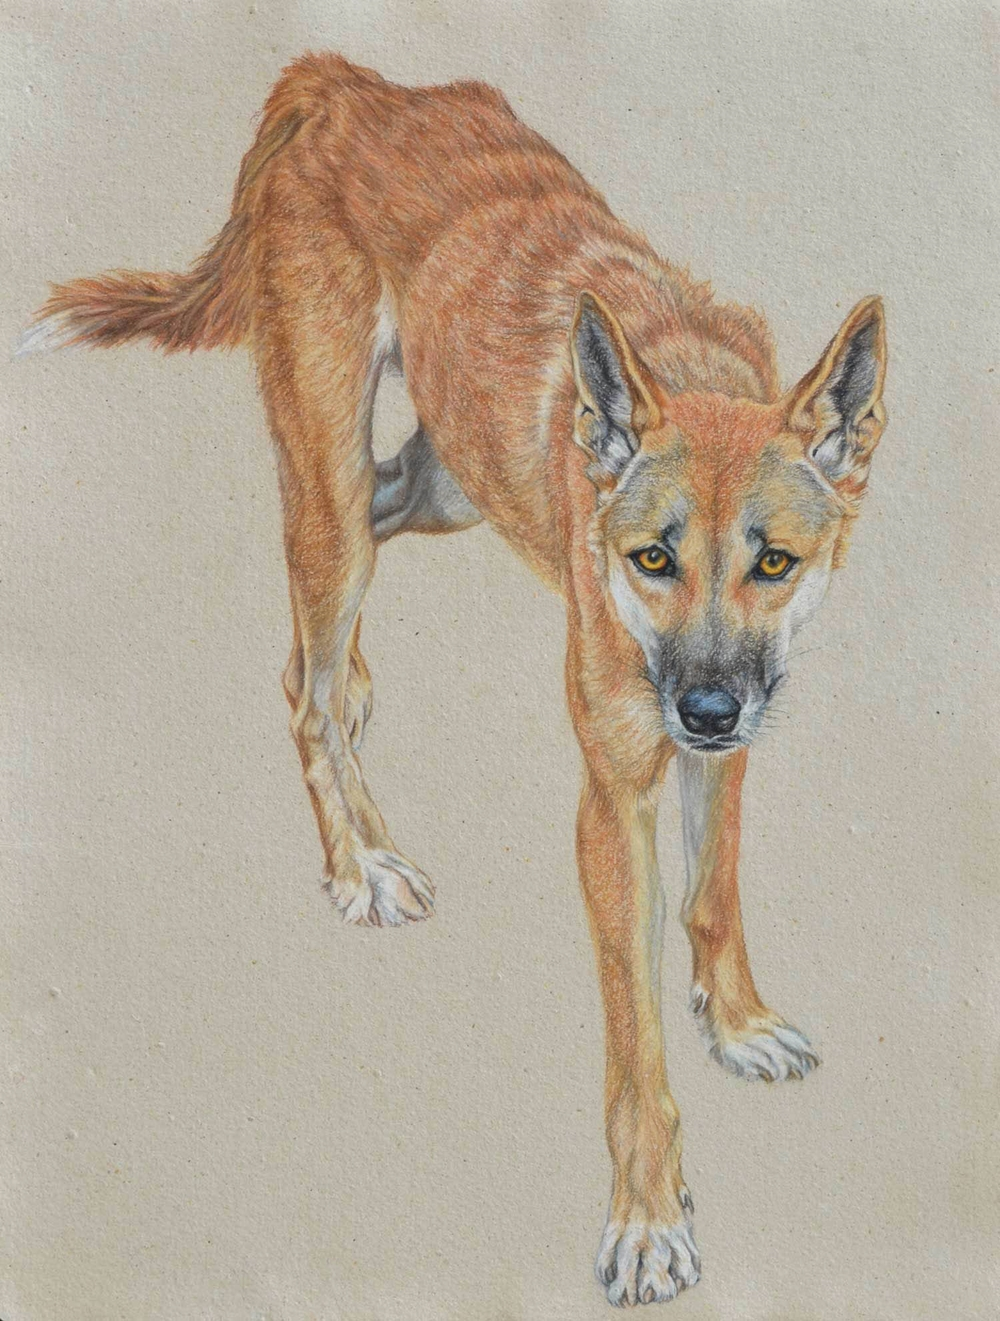 DINGO II 61 X 41 CM   PASTEL ON HANDMADE PAPER $3,750 framed  AVAILABLE AS LIMITED EDITION of 50, PIGMENT PRINT ON WATERCOLOUR PAPER 64 X 49 CM $950